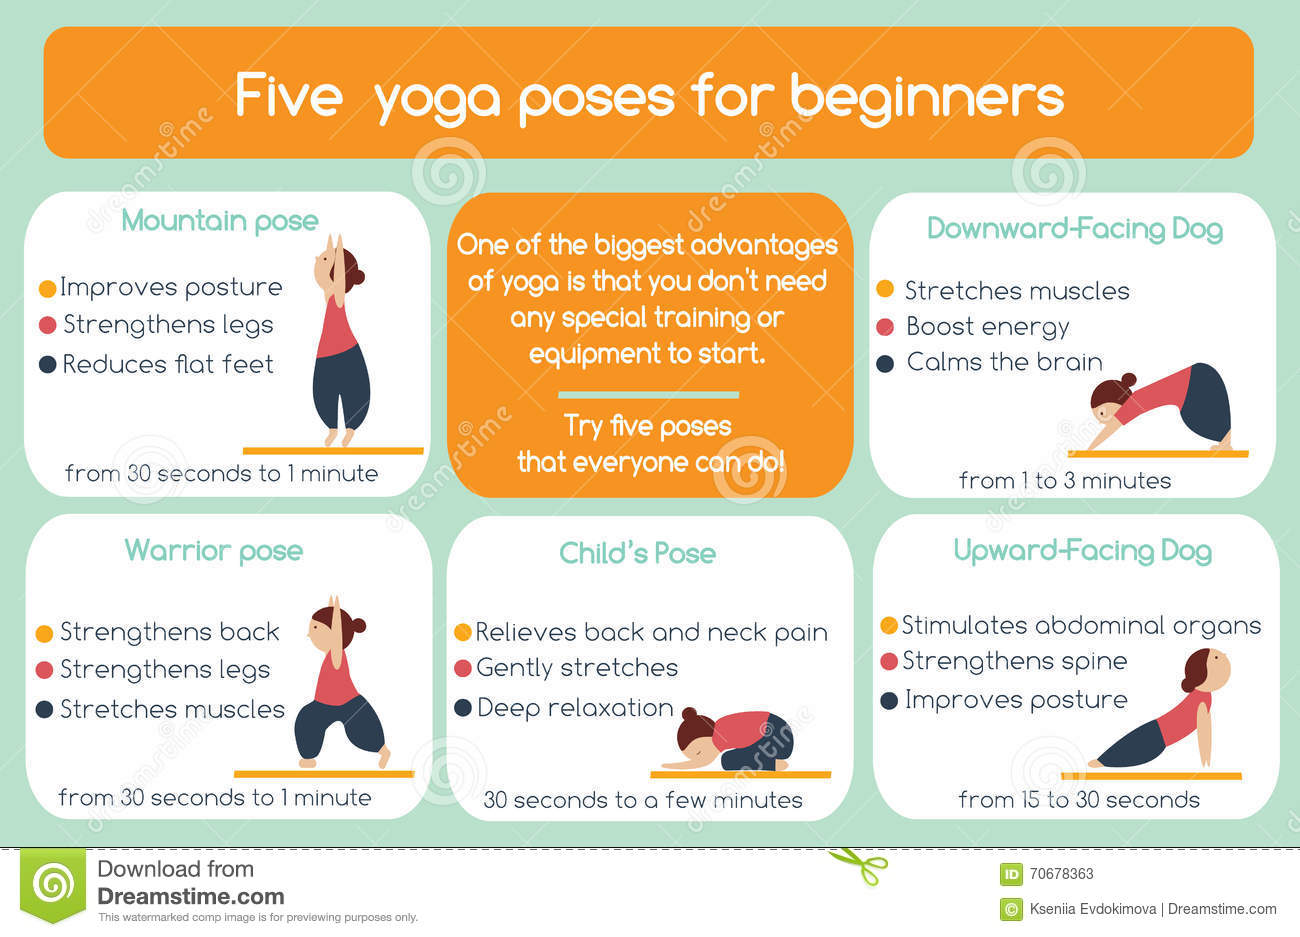 Download Yoga Poses For Beginners Infographic Stock Image